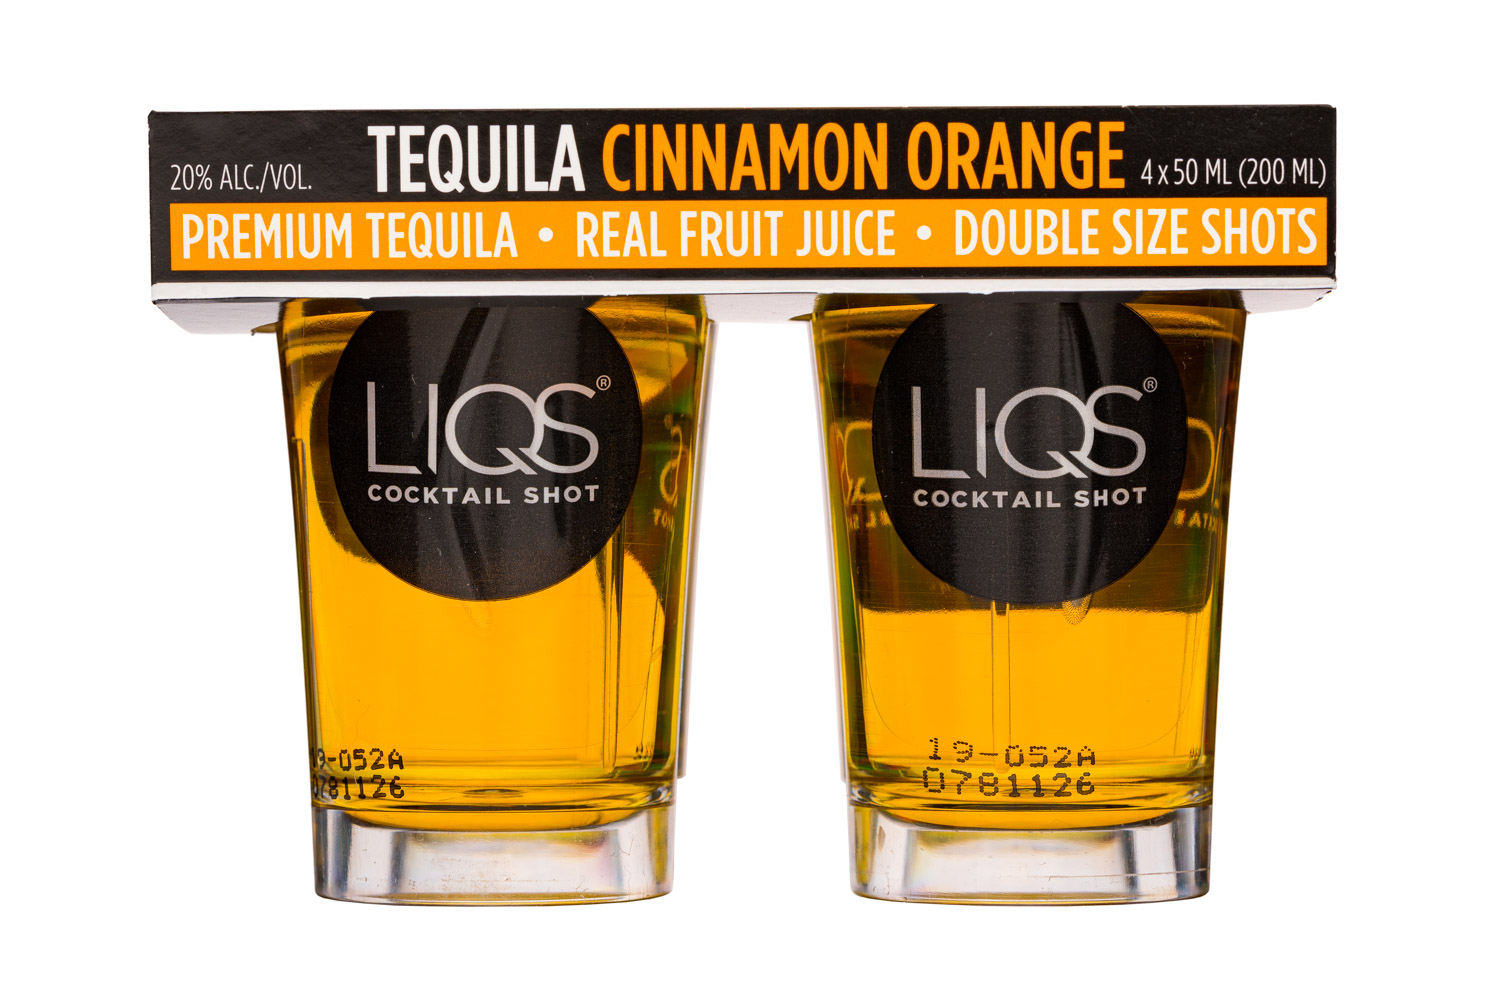 Tequila Cinnamon Orange